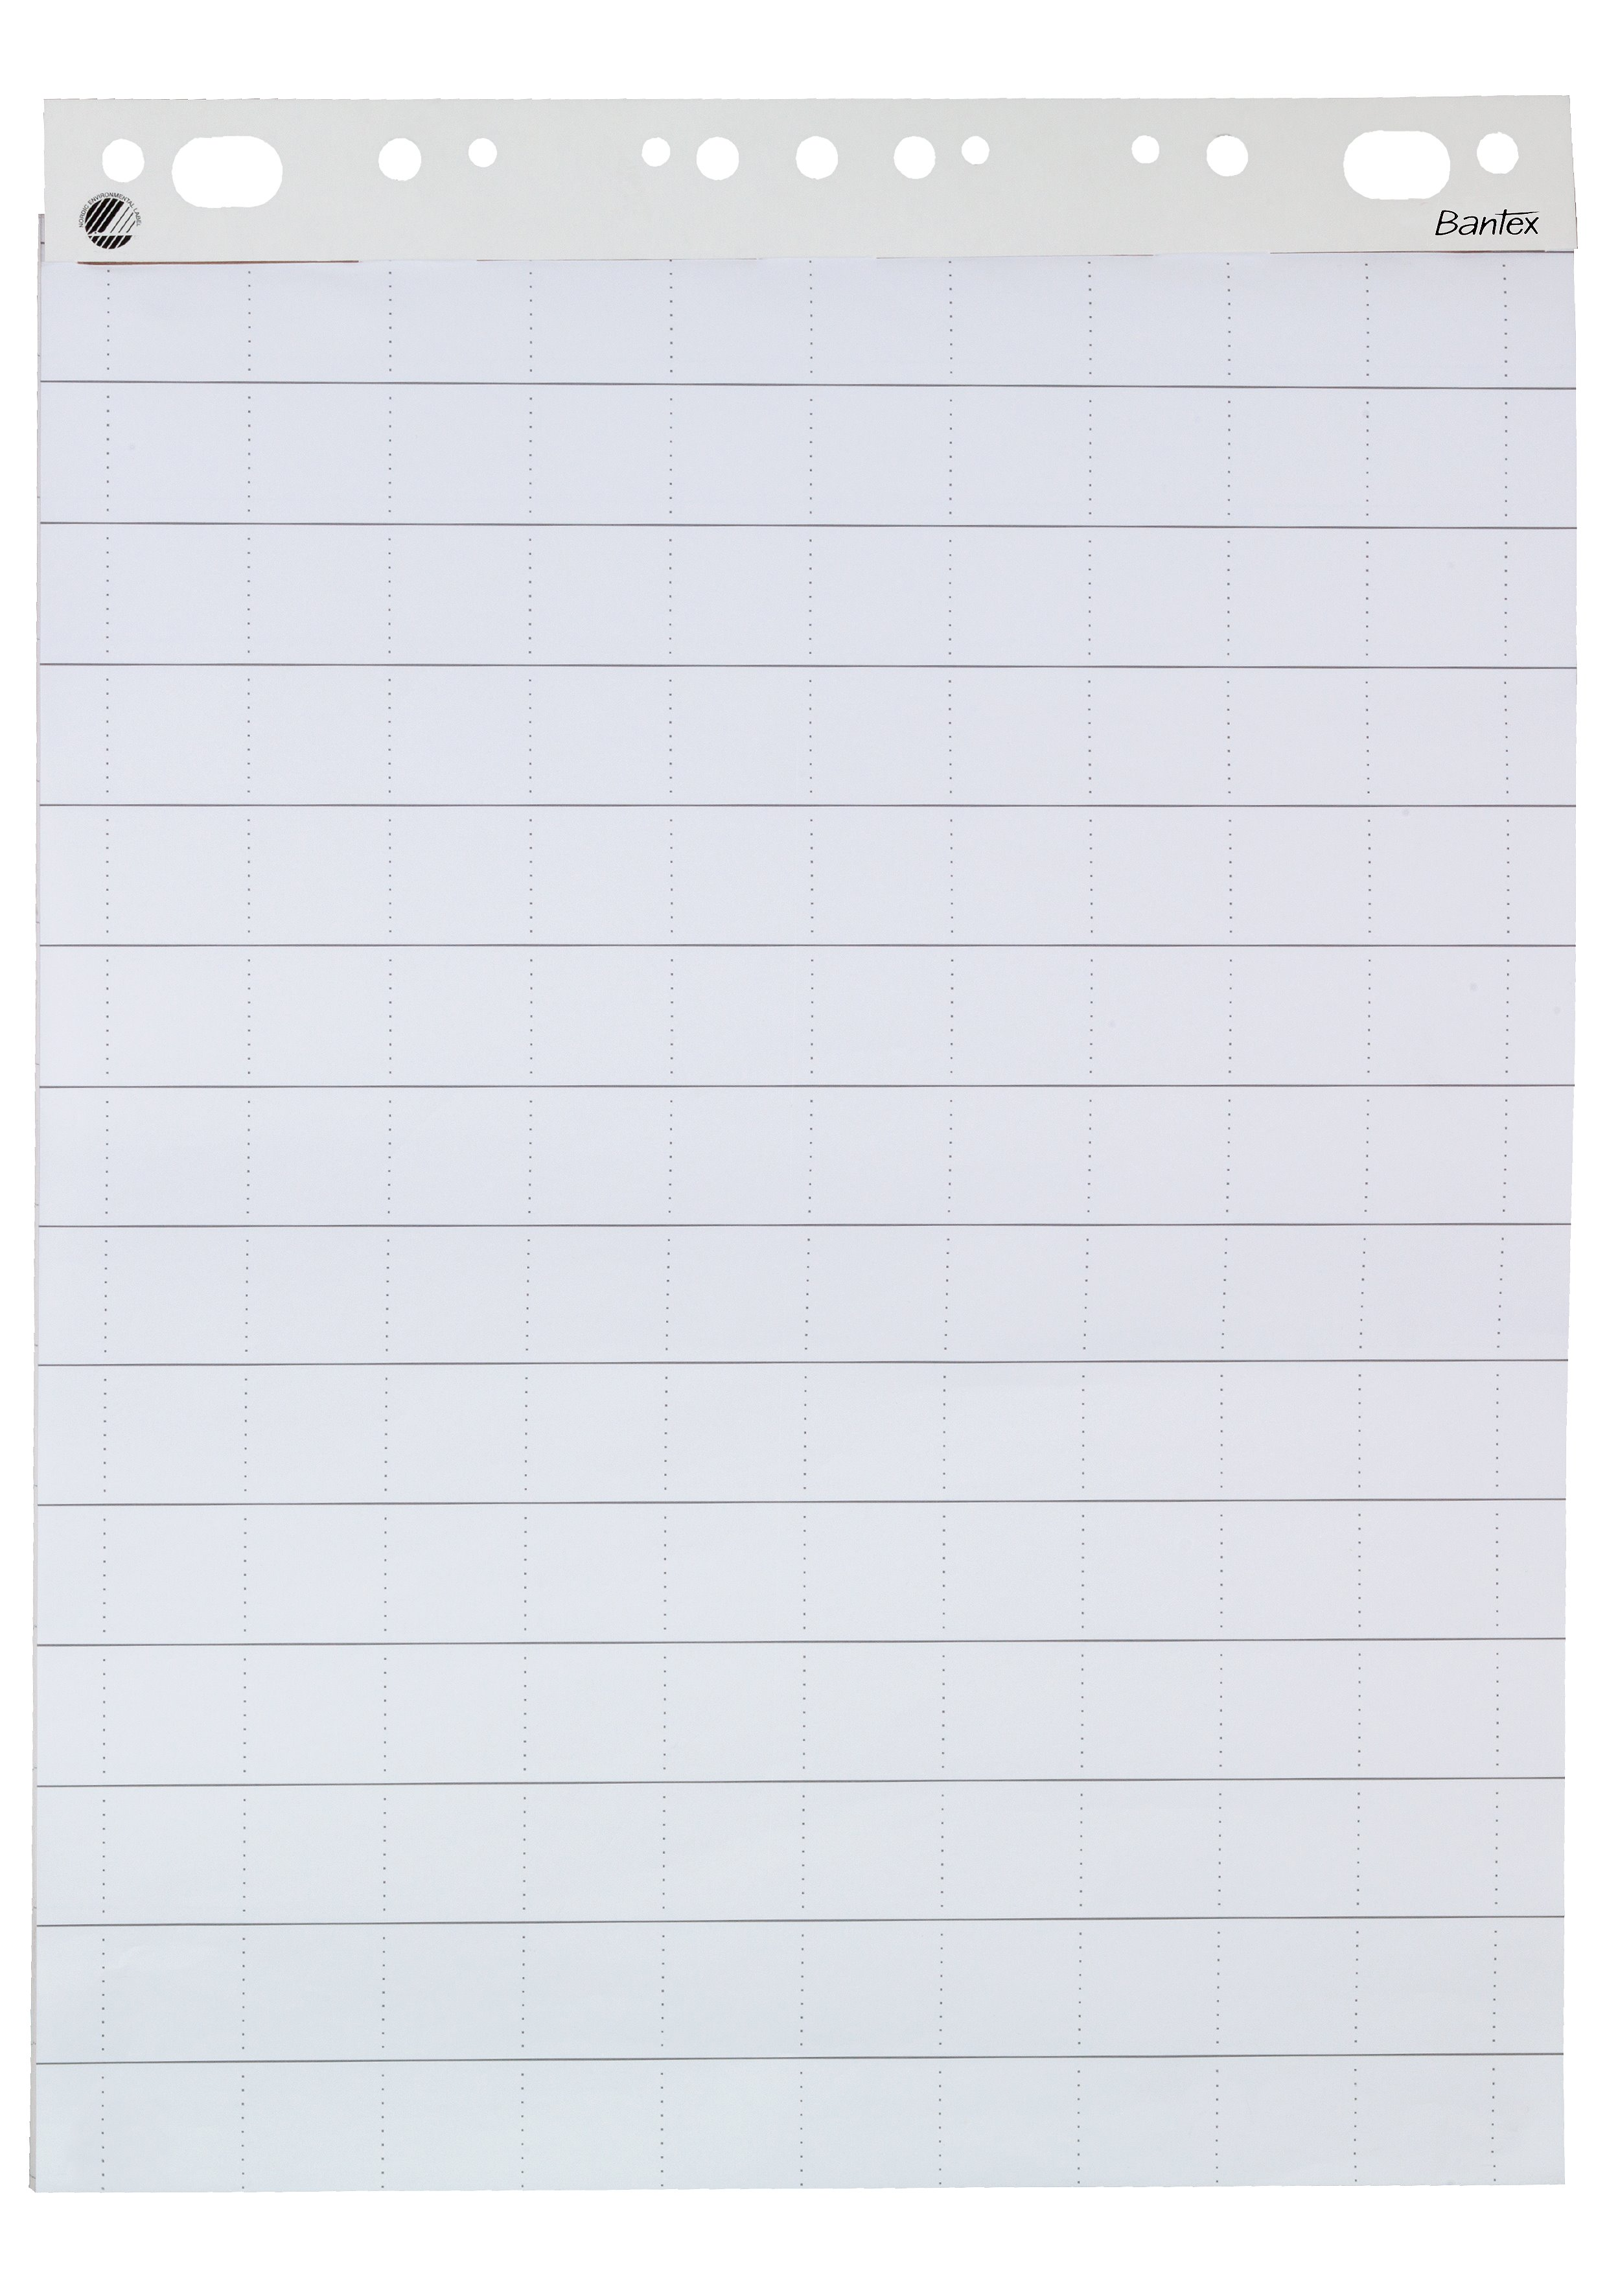 Bantex flipchart paper is designed for businesses requiring a flexible solution. The paper is squared on one side and plain on the other. The punched holes fit most flipchart stands on the market. The flipchart paper bears the Nordic Swan eco-label.